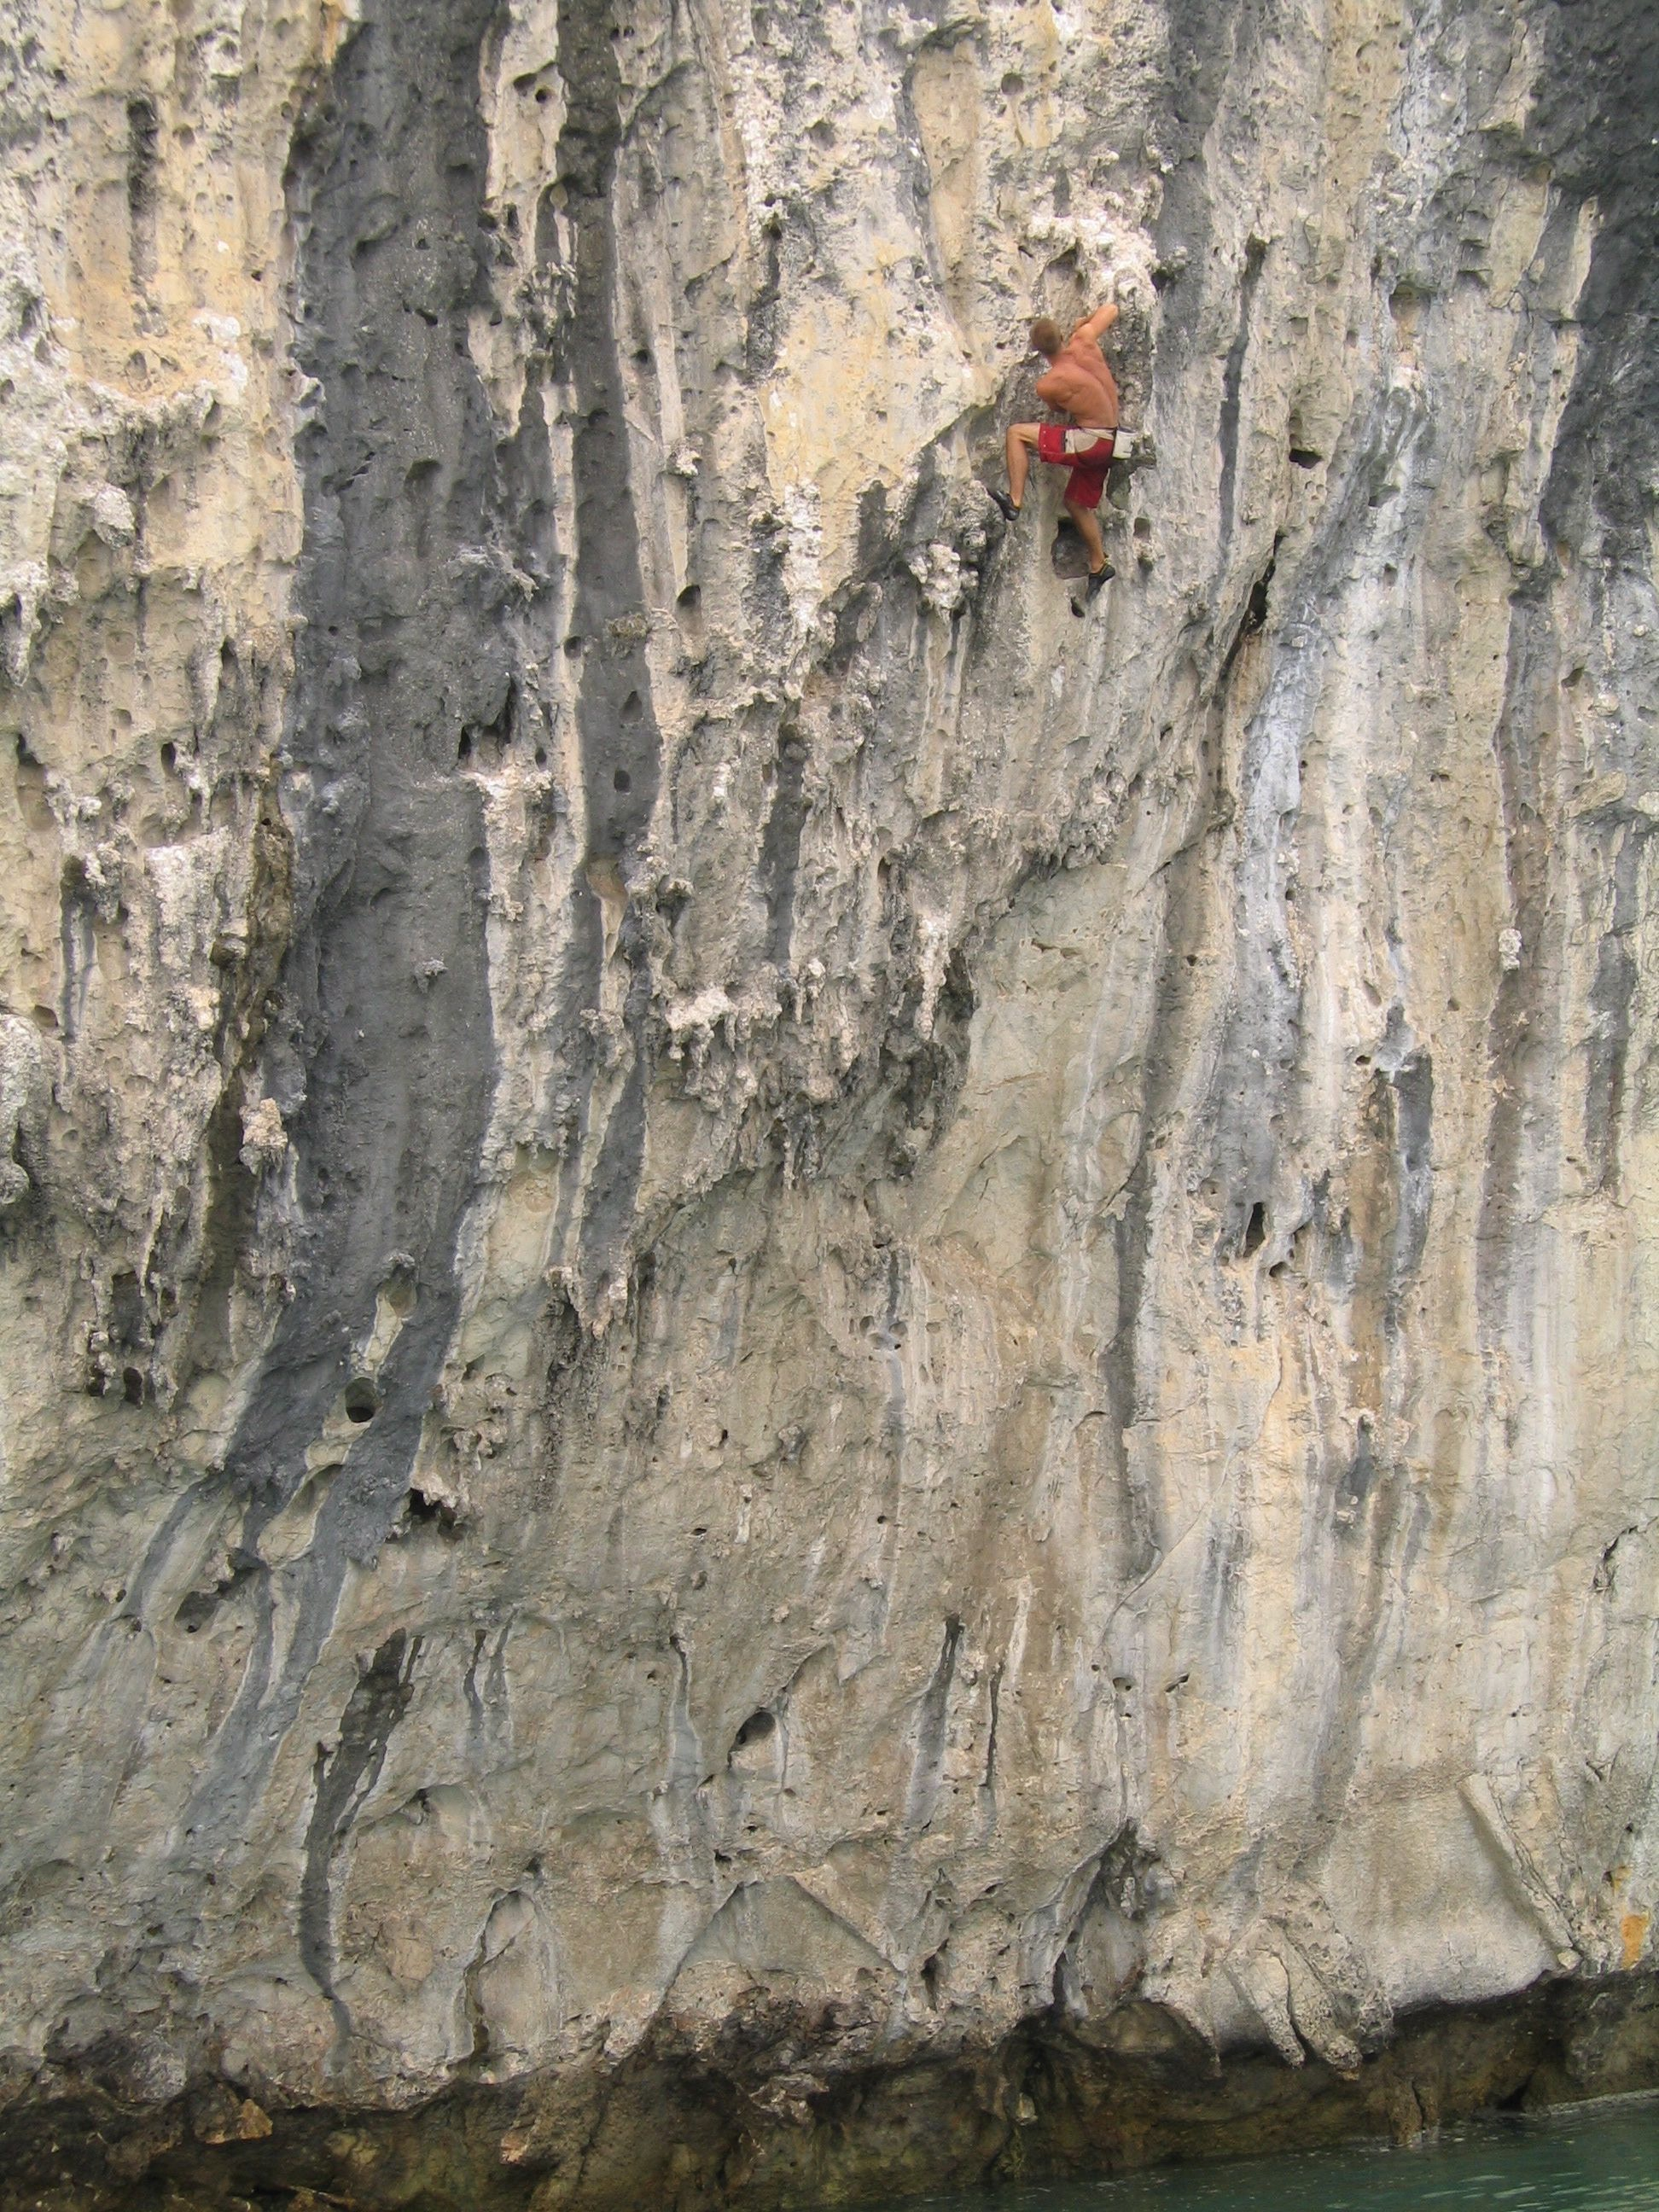 Tarantula 7b, Cathedral Rock. First ascent in 2003.  Photo: Gresham collection